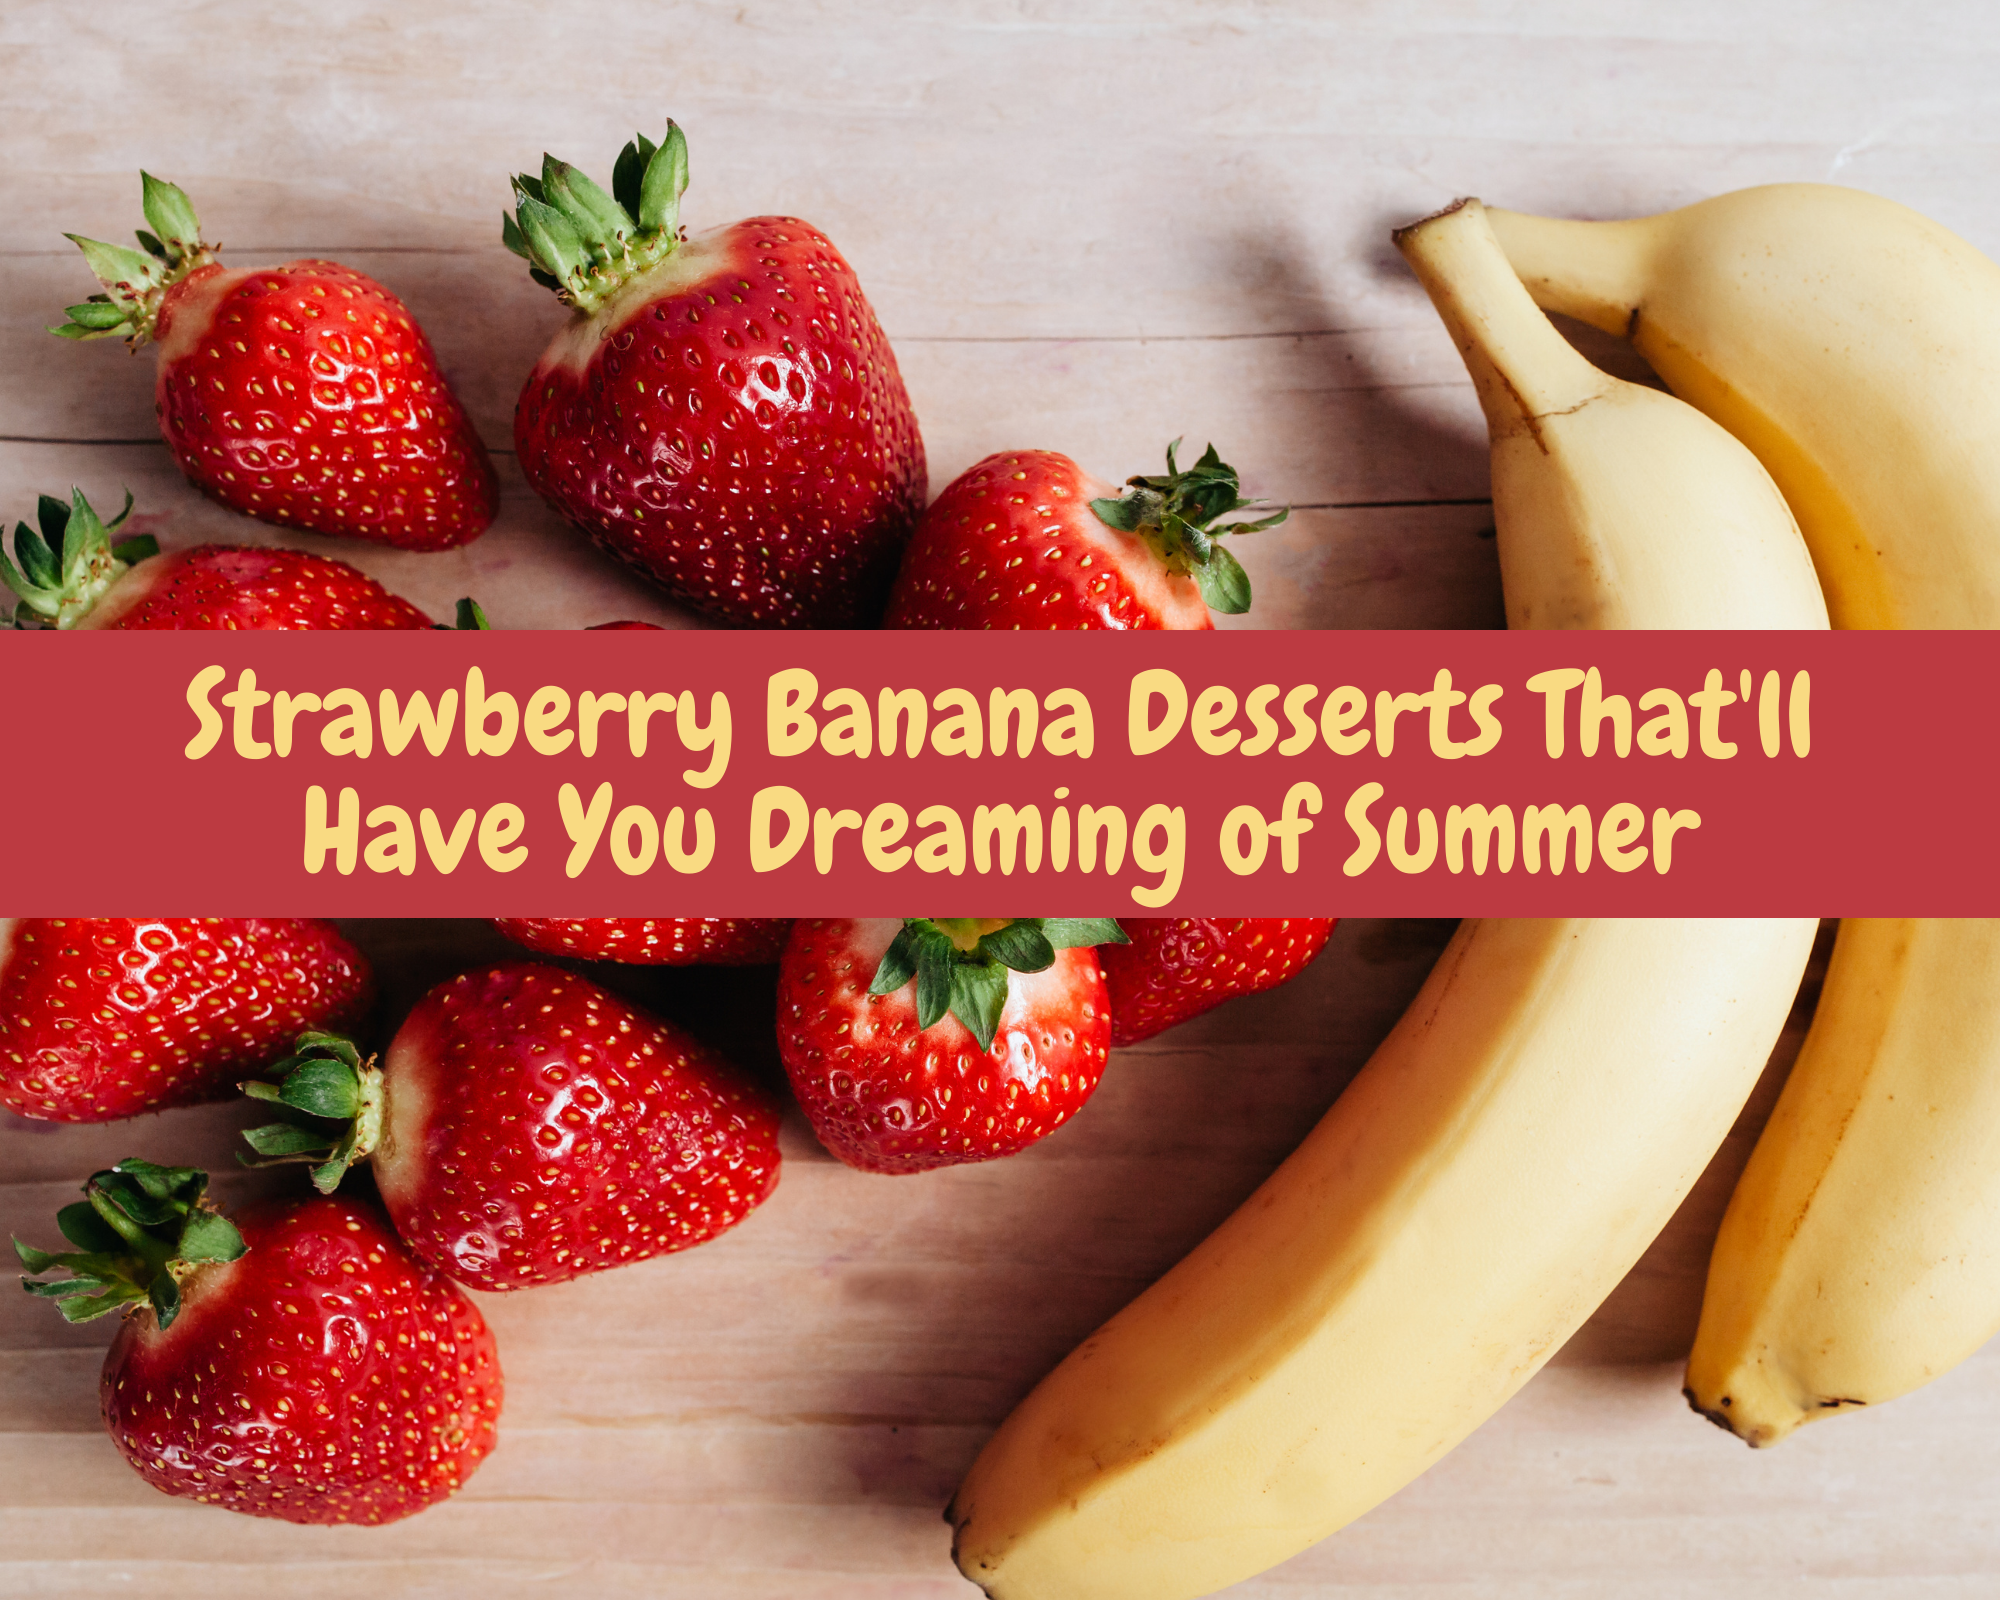 Strawberry banana desserts